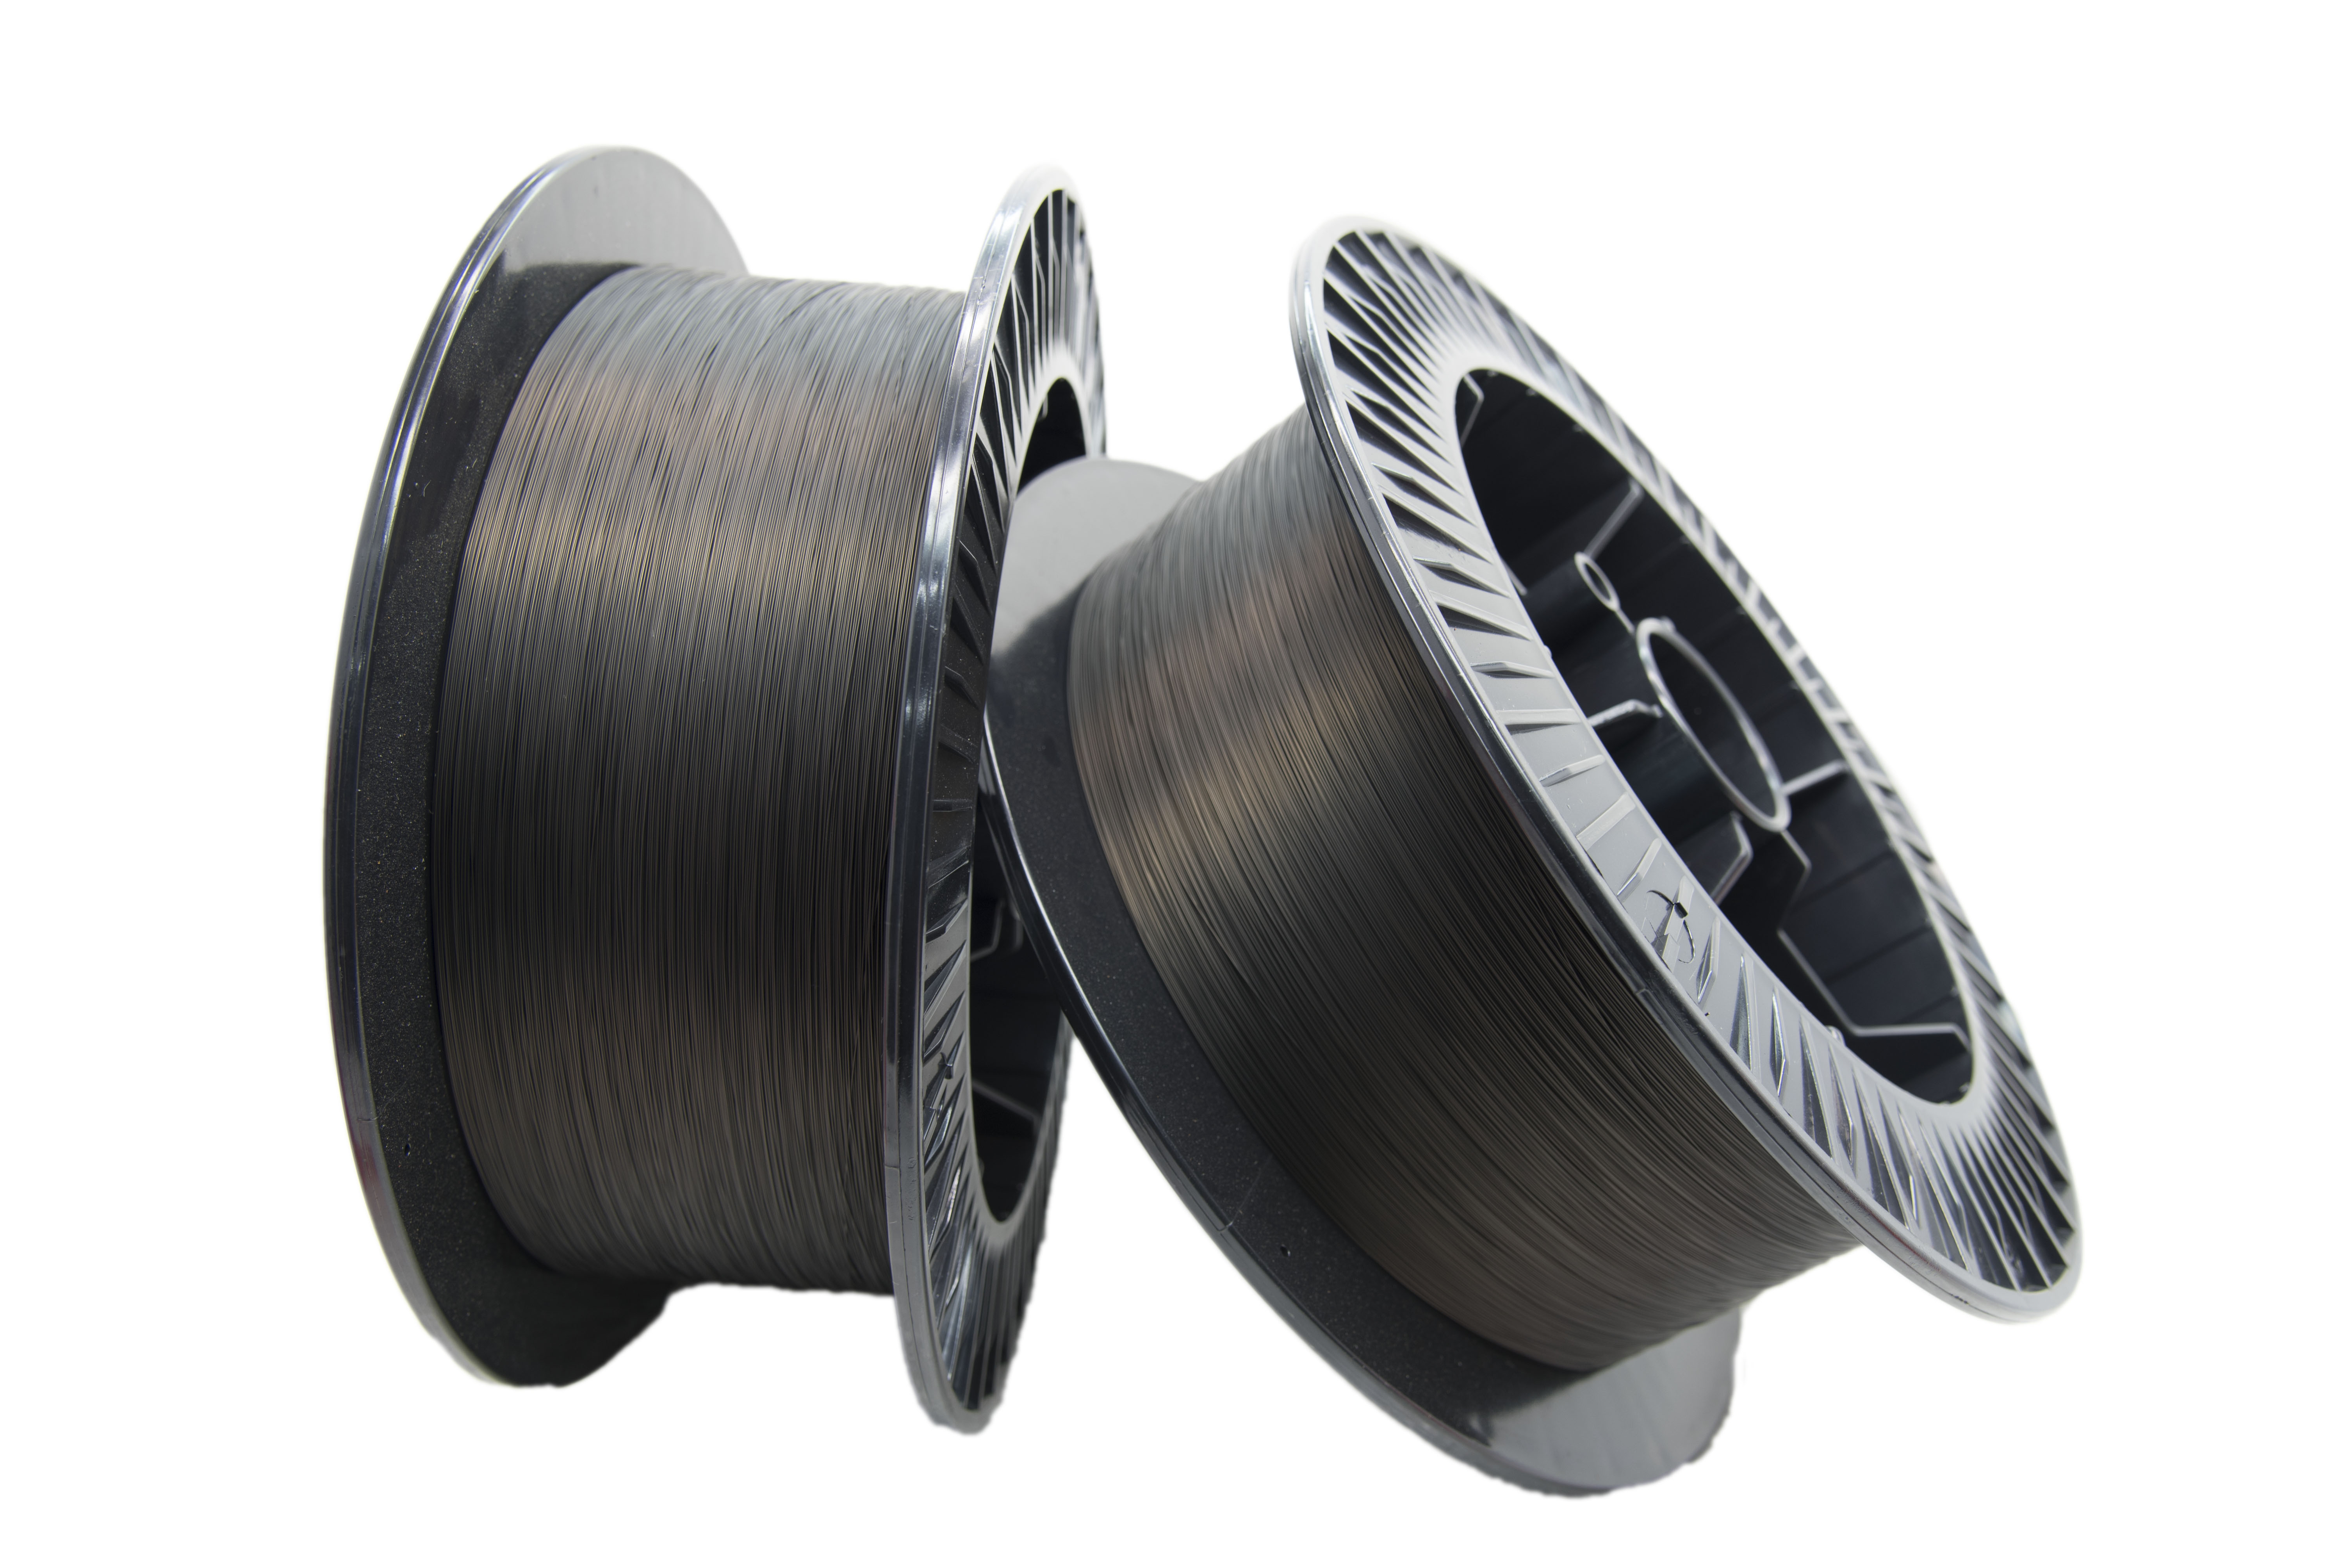 Black Wrapping Ag wire